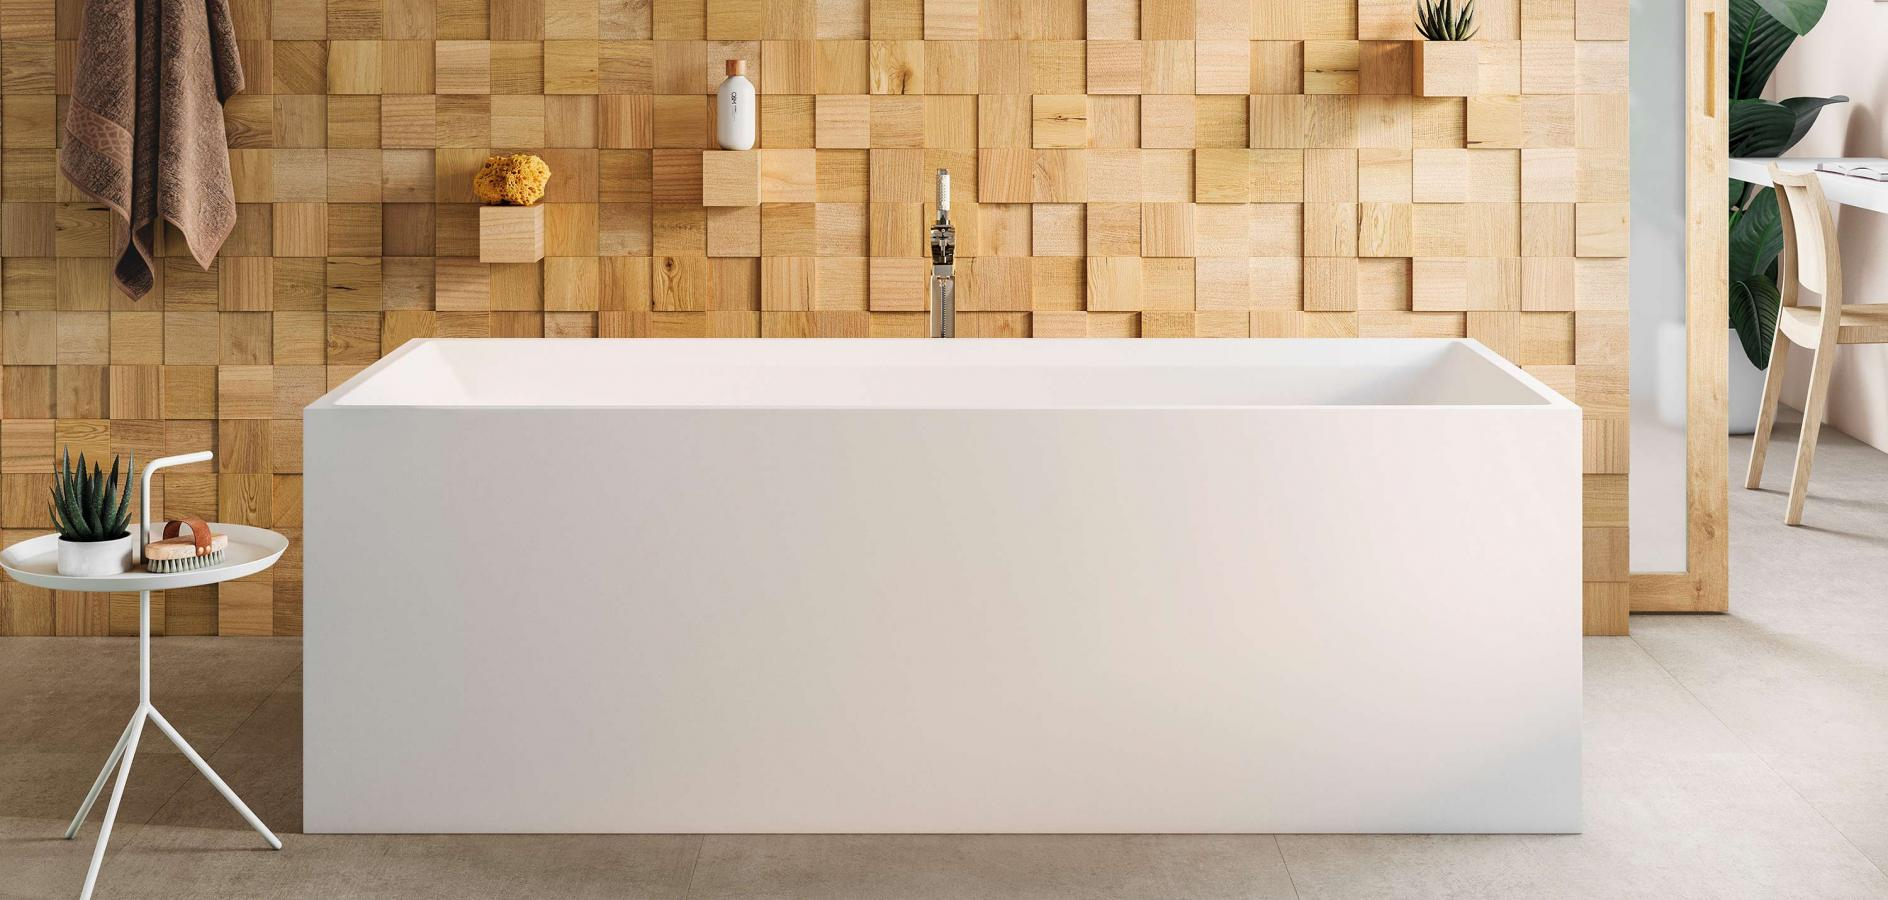 Discover freestanding bathtubs with roca roca life